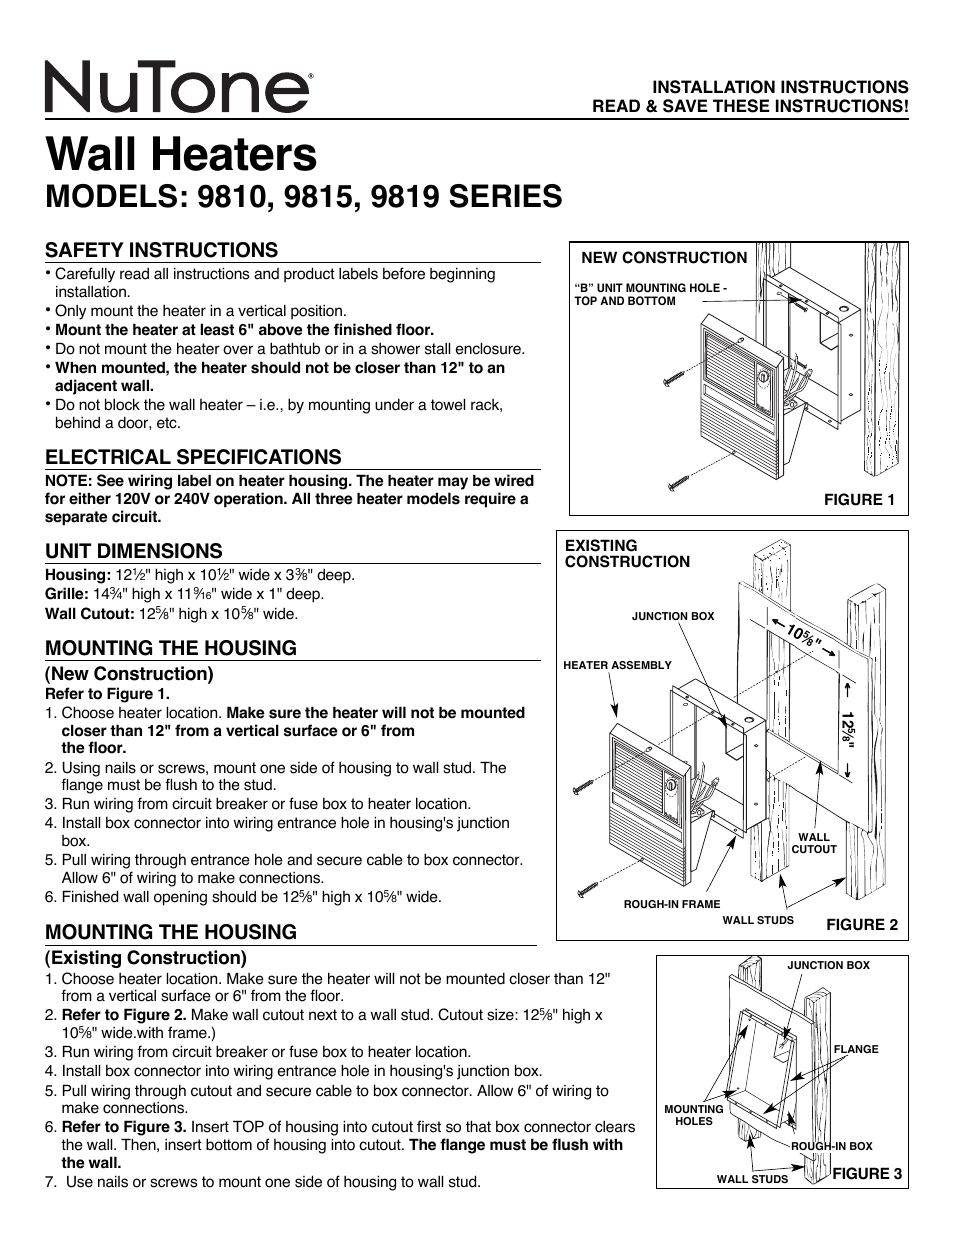 Nutone Wall Heater Wiring Diagram 1550 Schematic Diagrams House Symbols U2022 Baseboard Thermostat